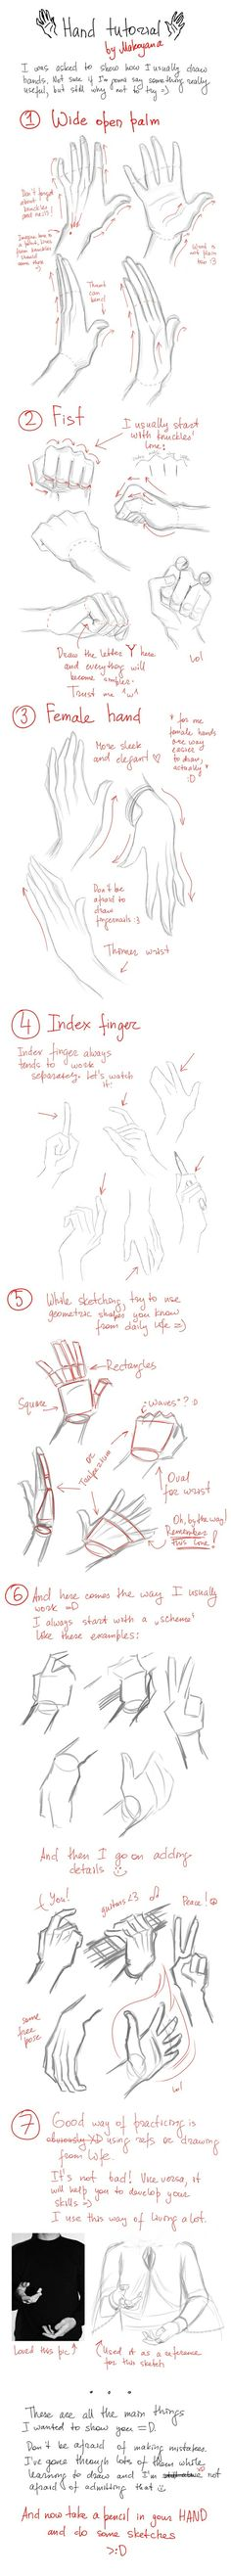 Hands tutorial (Hands are the worst, this will definitely come in handy. No pun intended)